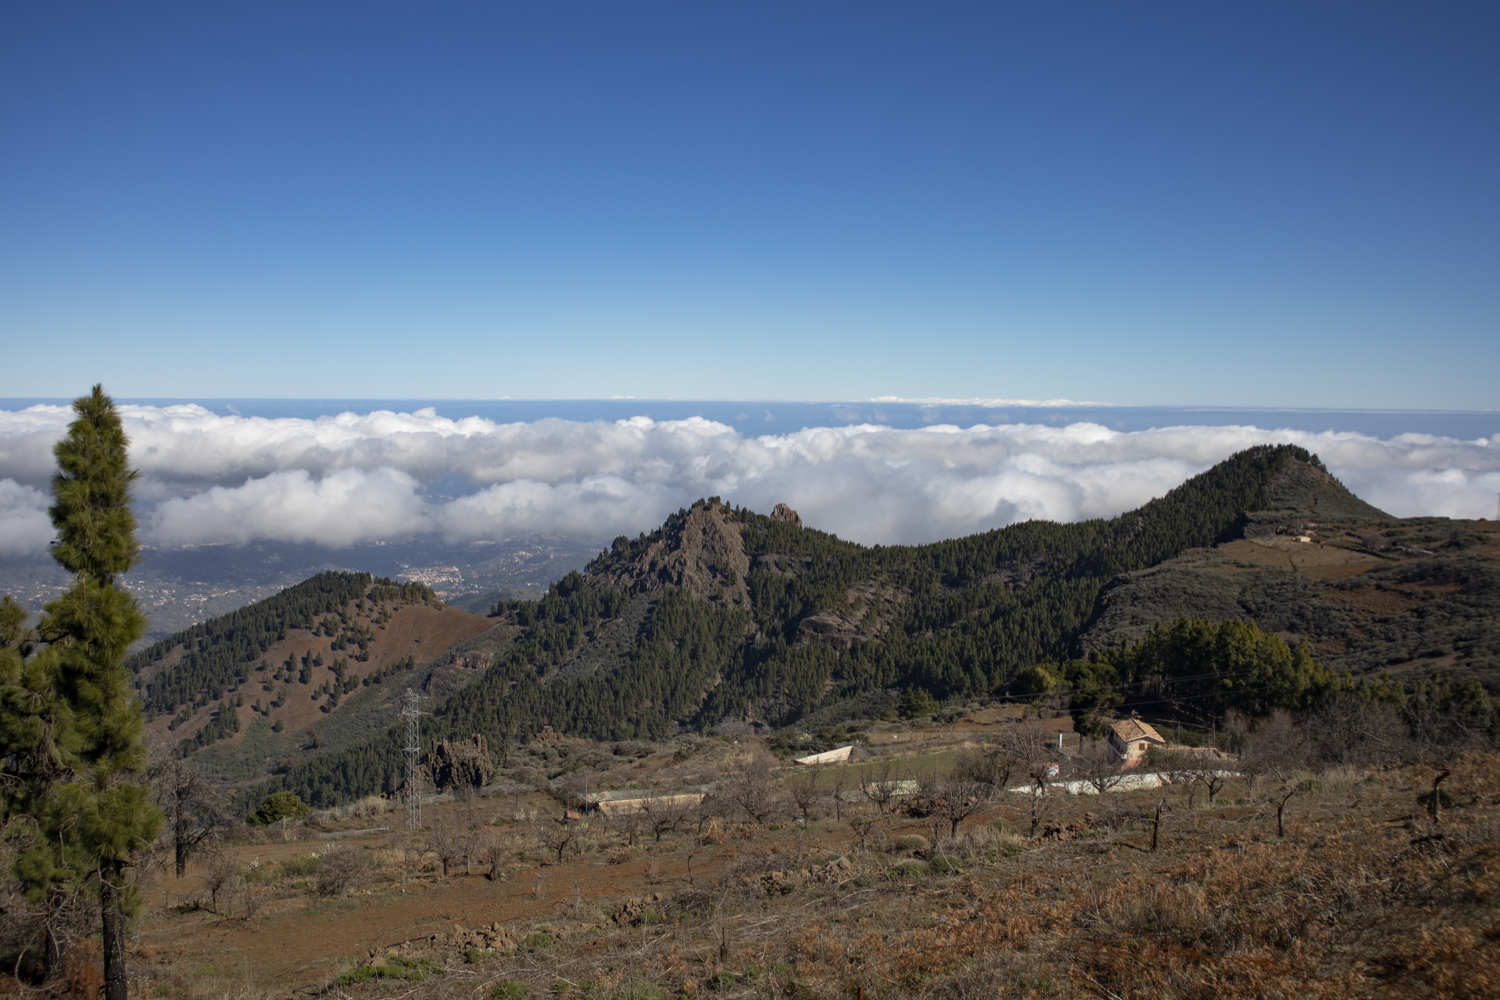 View over the mountain ranges and the clouds from the Becerra hiking trail